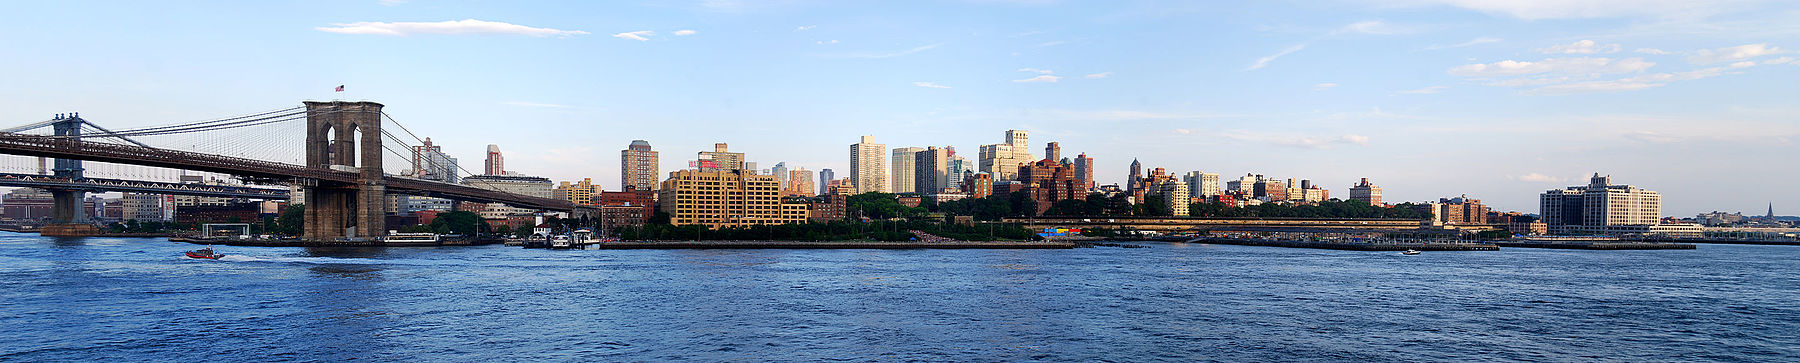 The Downtown Brooklyn skyline at the western end of Long Island. The Manhattan Bridge (far left) and the Brooklyn Bridge (near left) are seen across the East River from Lower Manhattan at sunset in June 2013.